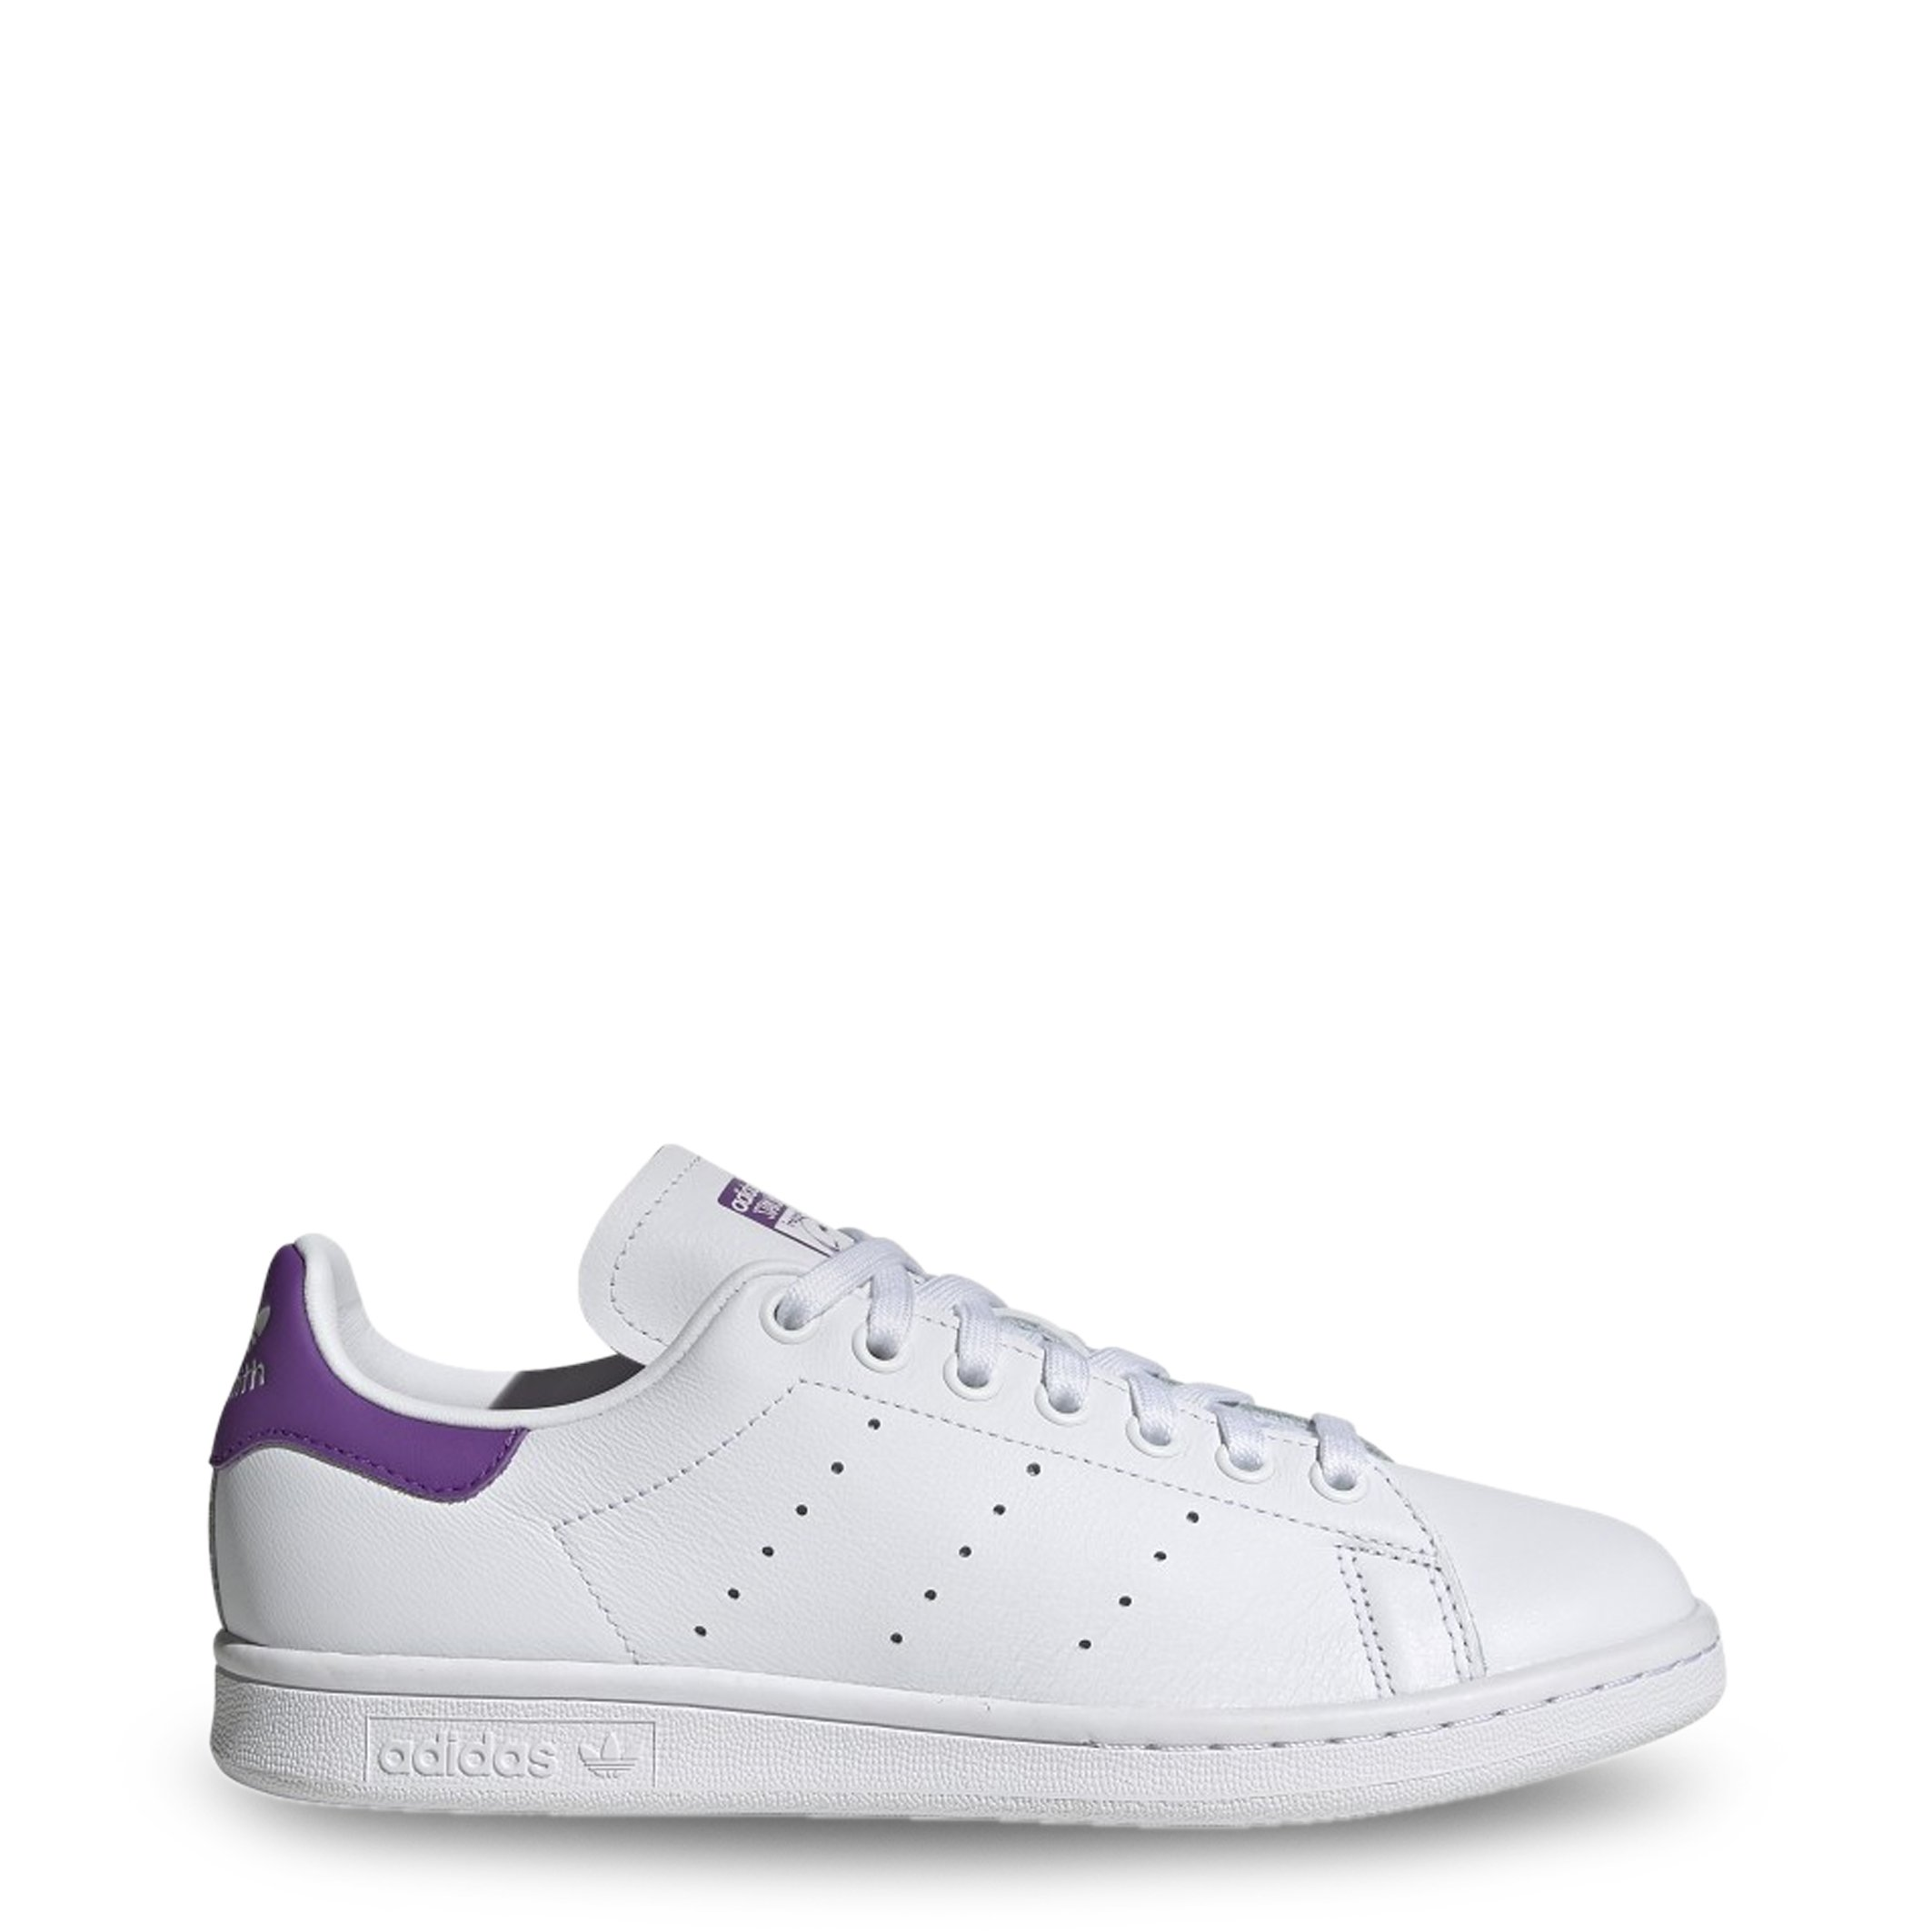 Adidas Unisex Stan Smith Trainers Various Colours - white-4 3.5 UK